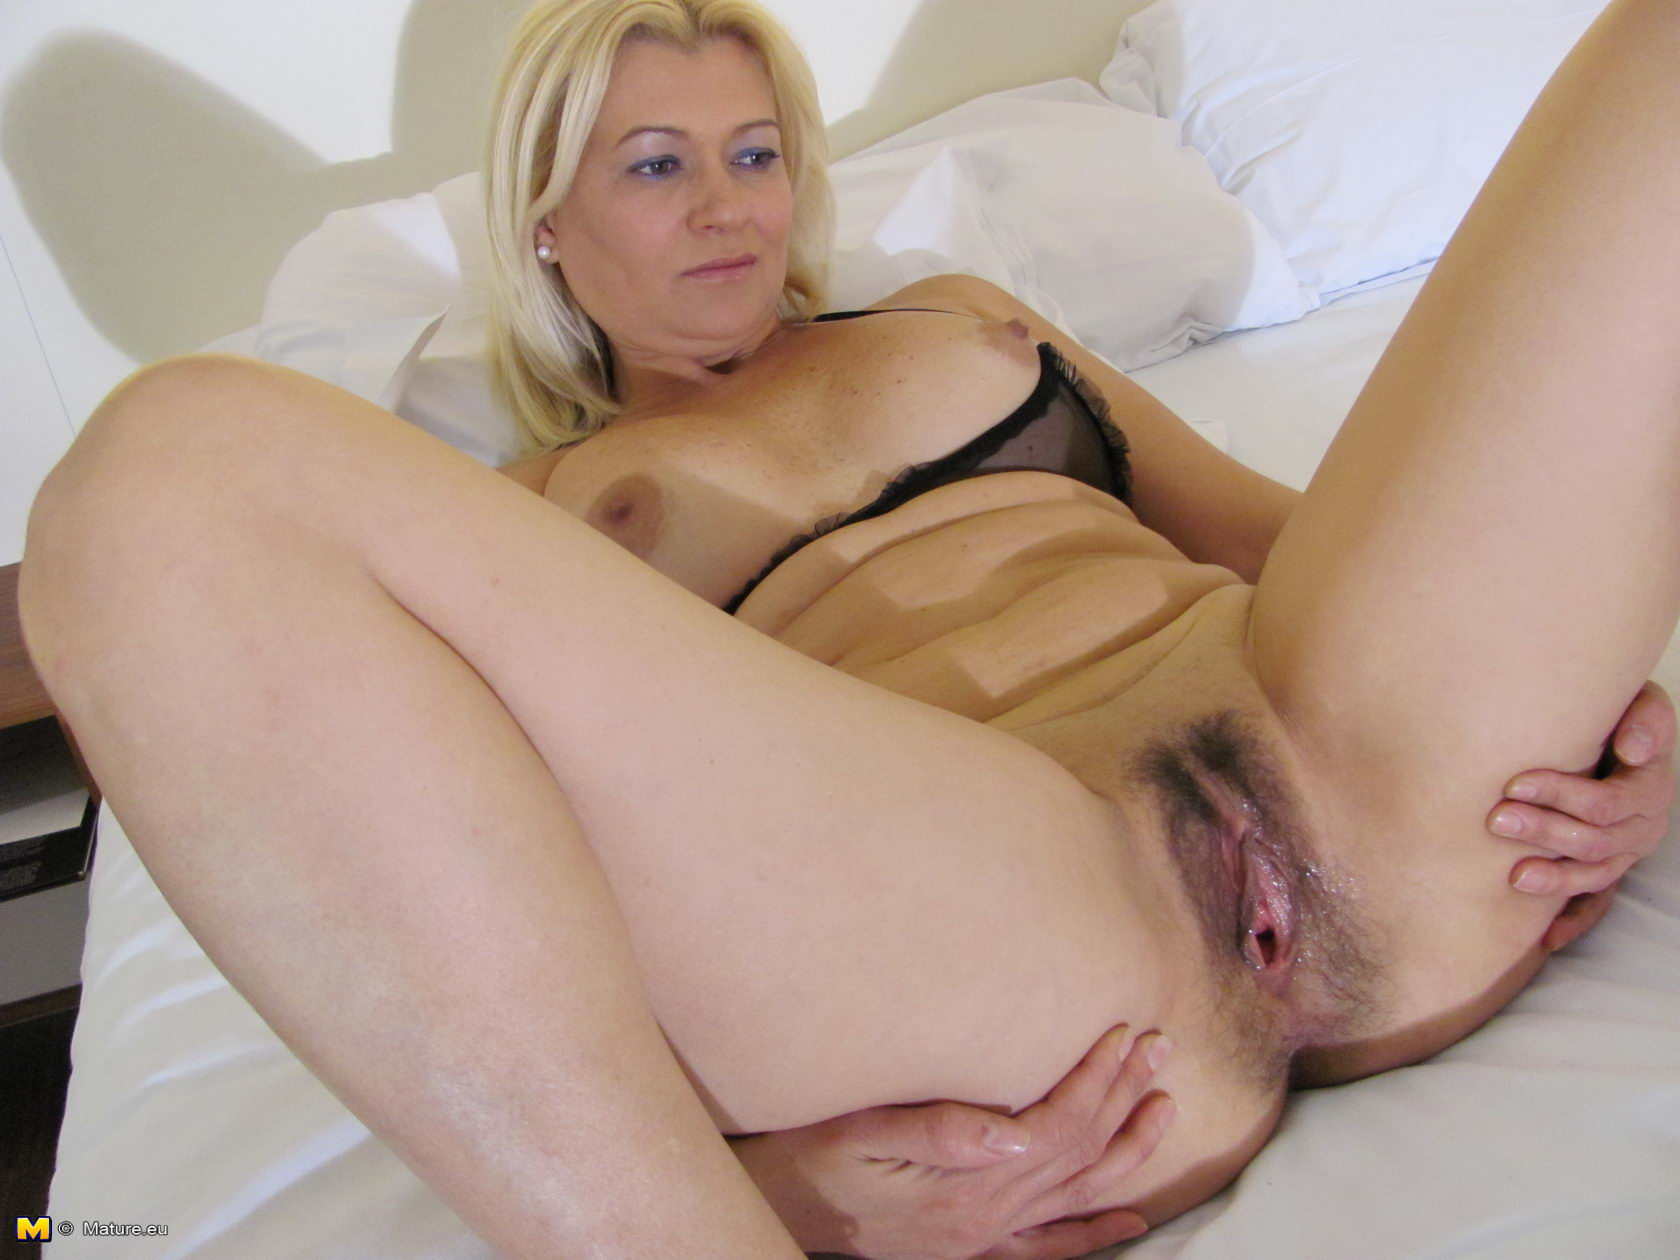 Woman multiple men sex free videos